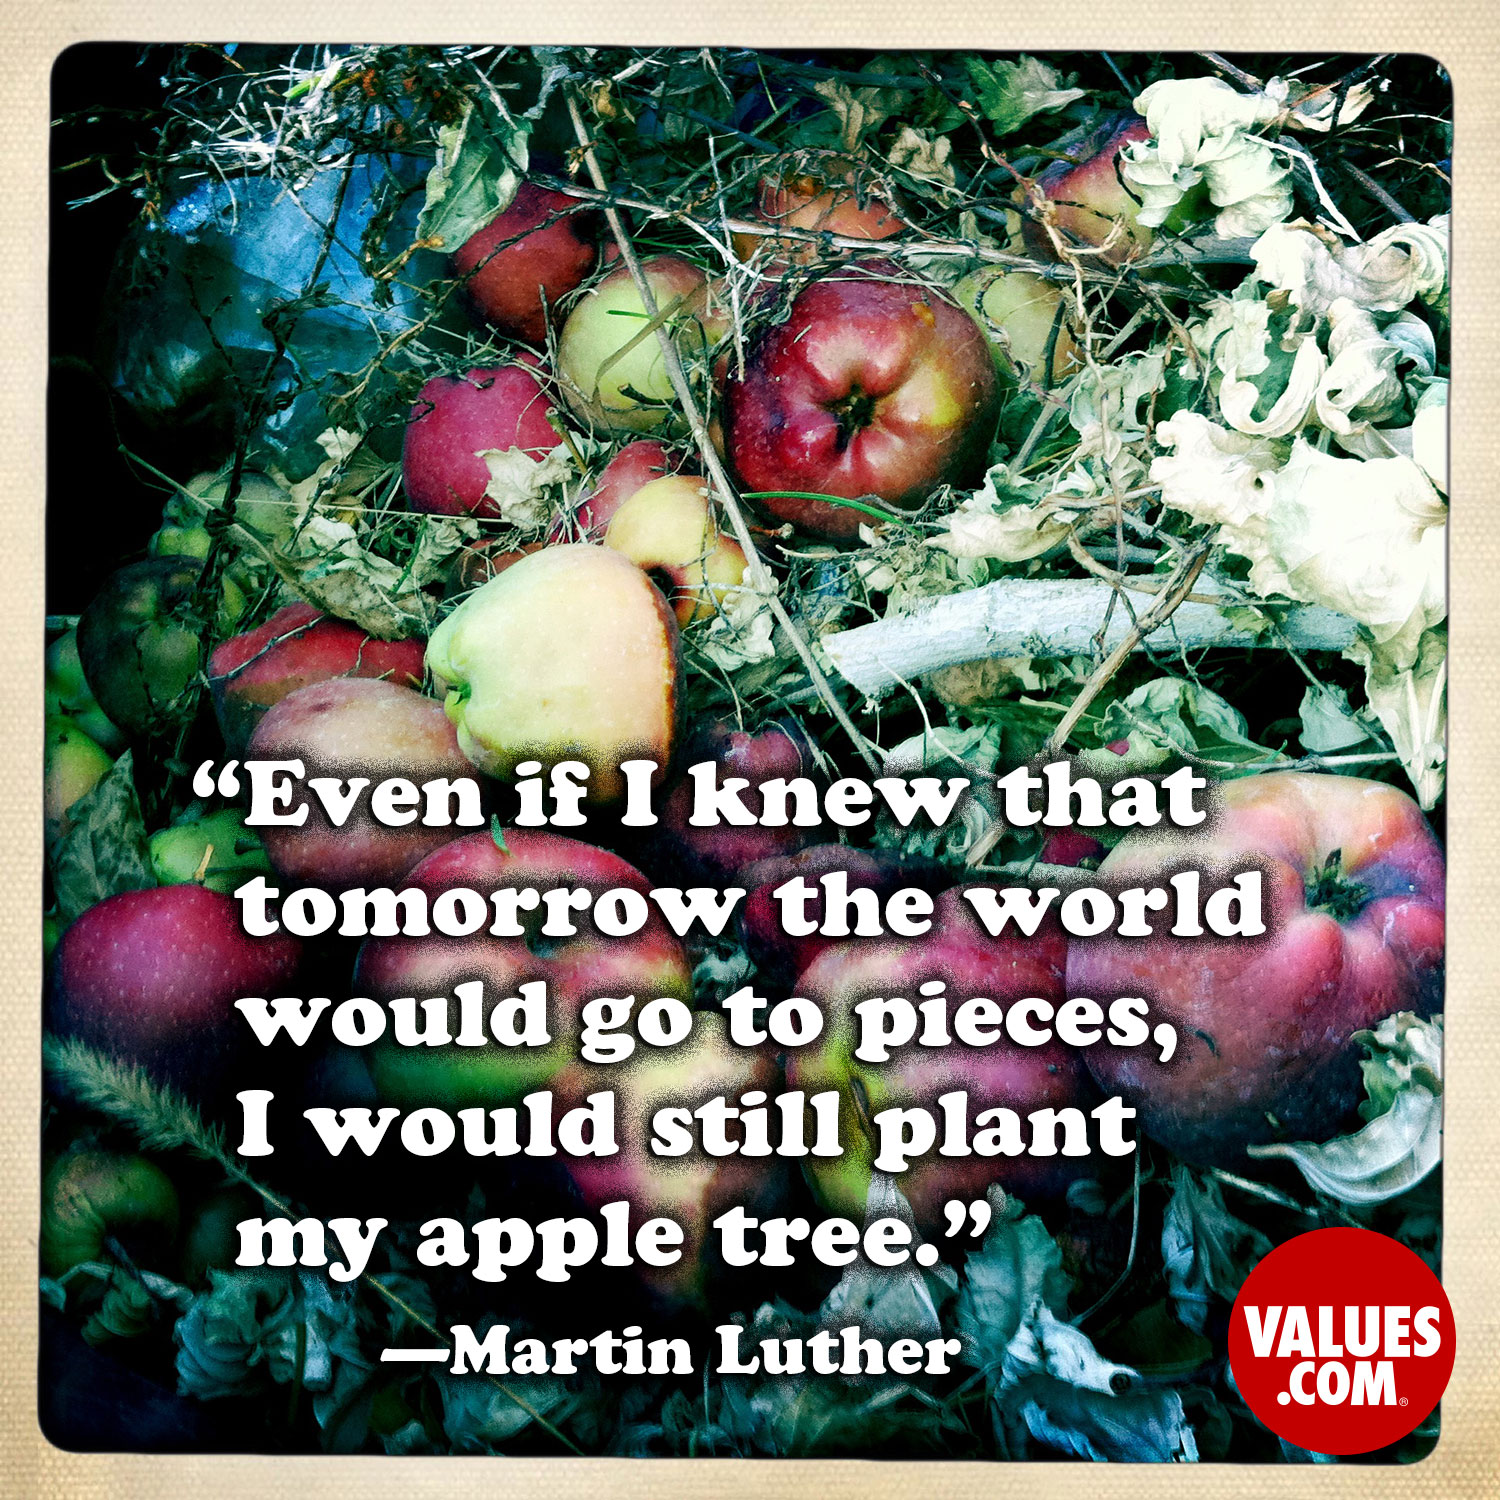 Even if I knew that tomorrow the world would go to pieces, I would still plant my apple tree.  —Martin Luther